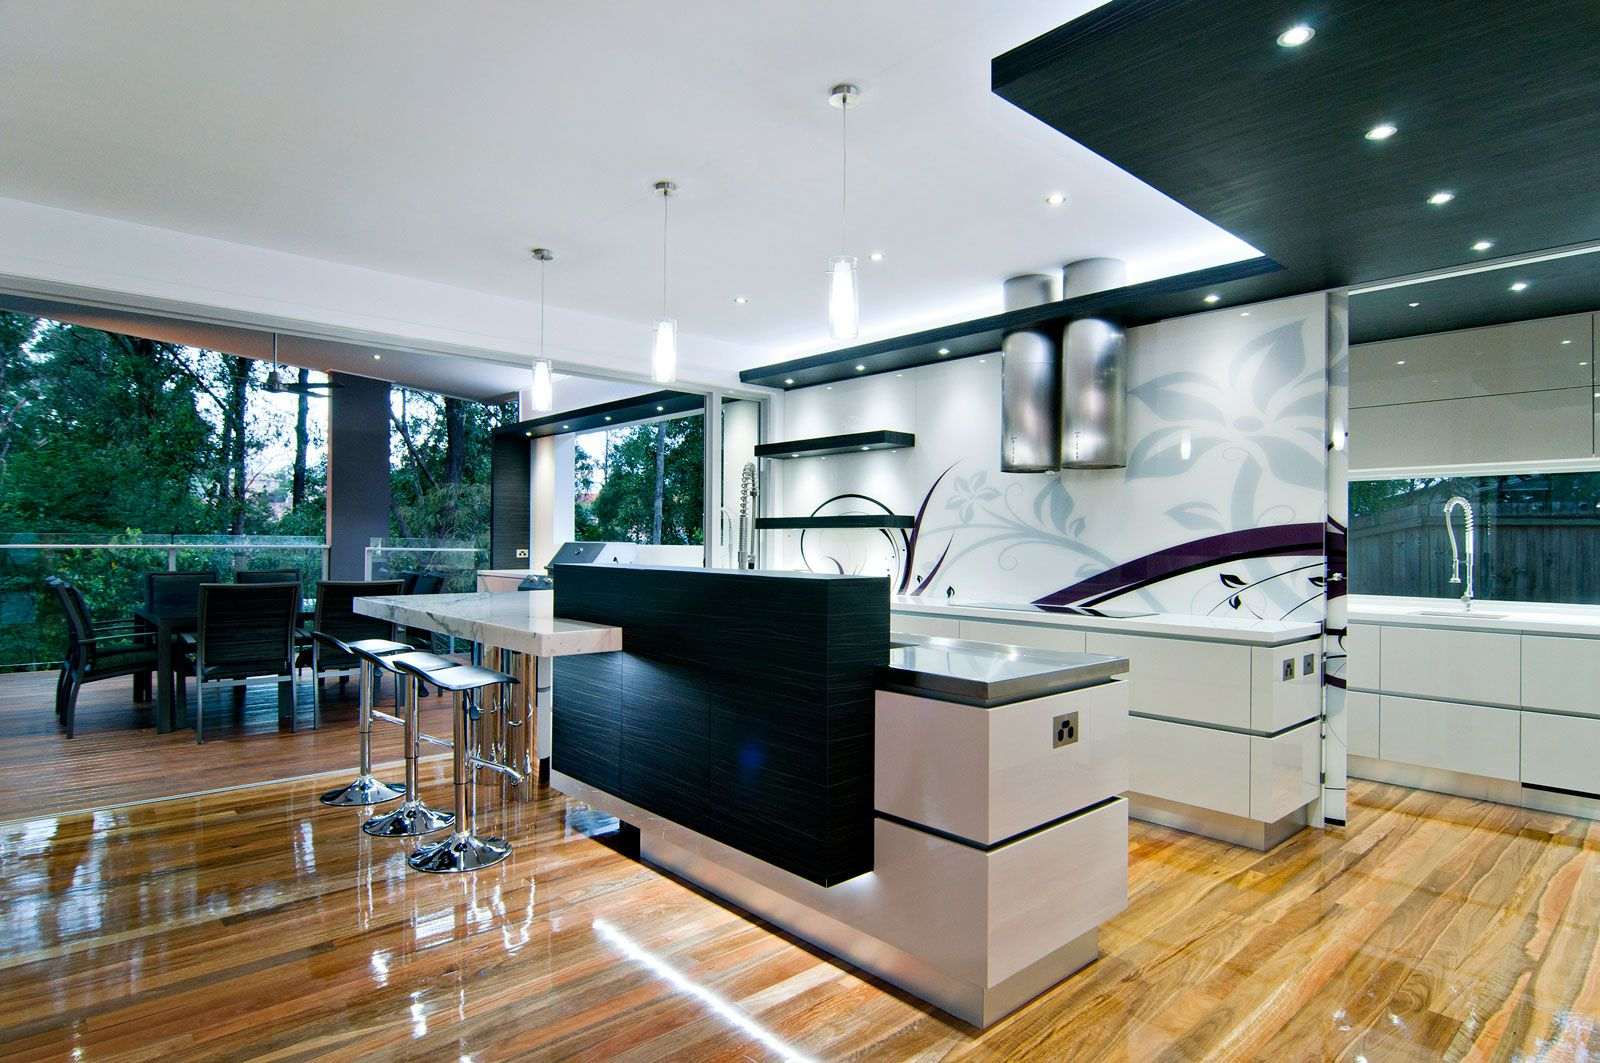 Designer kitchens creating a beautiful heart for your home